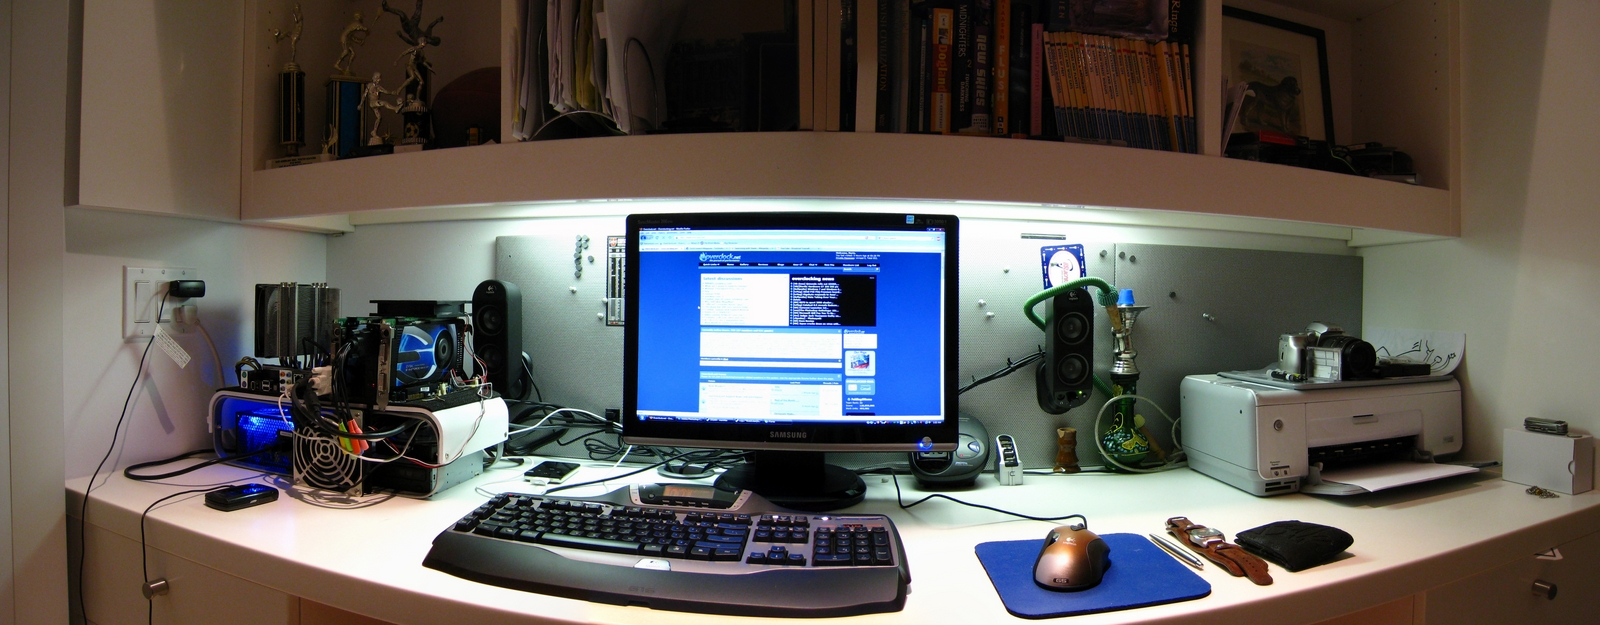 It's a panorama so it is distorted.